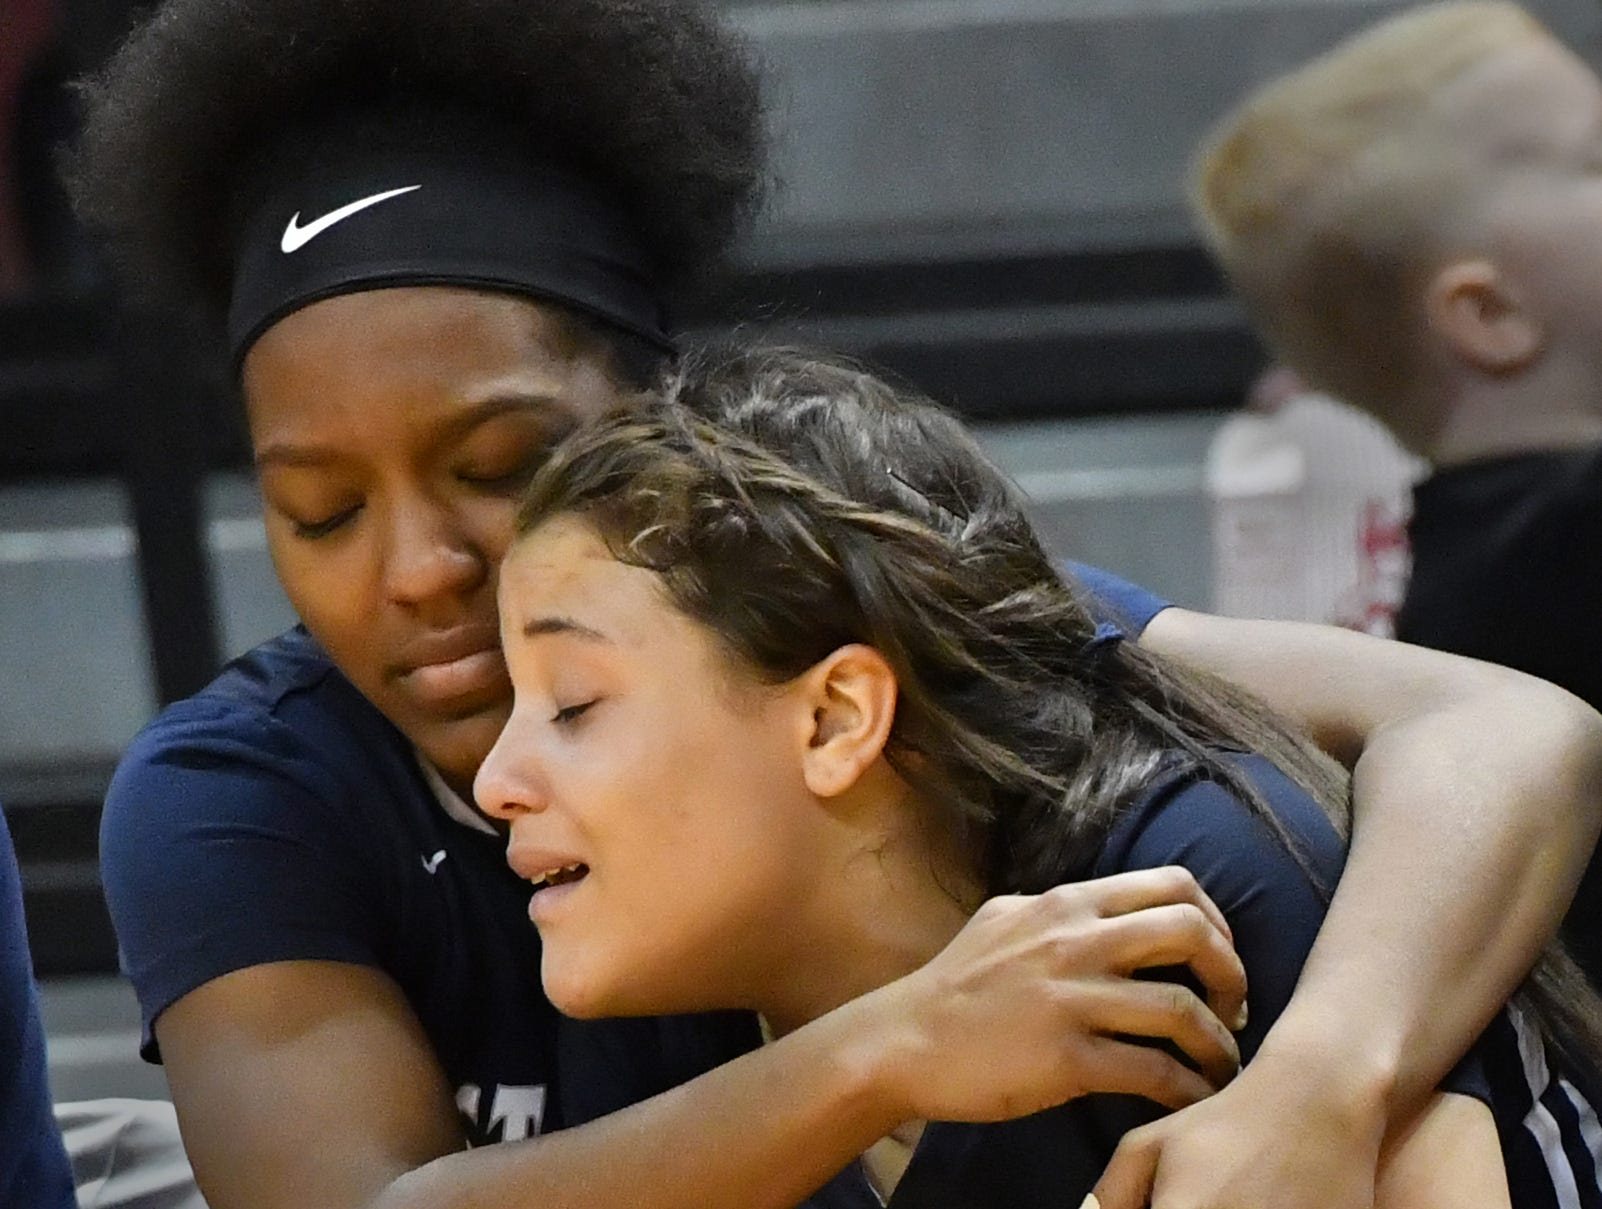 Zion Keyes, left, comforts teammate Amelia McNutt in the closing seconds of the MHSAA Girls Basketball Finals on Saturday, March 17, 2018 in Grand Rapids. East Lansing lost 57-36 to Saginaw Heritage.